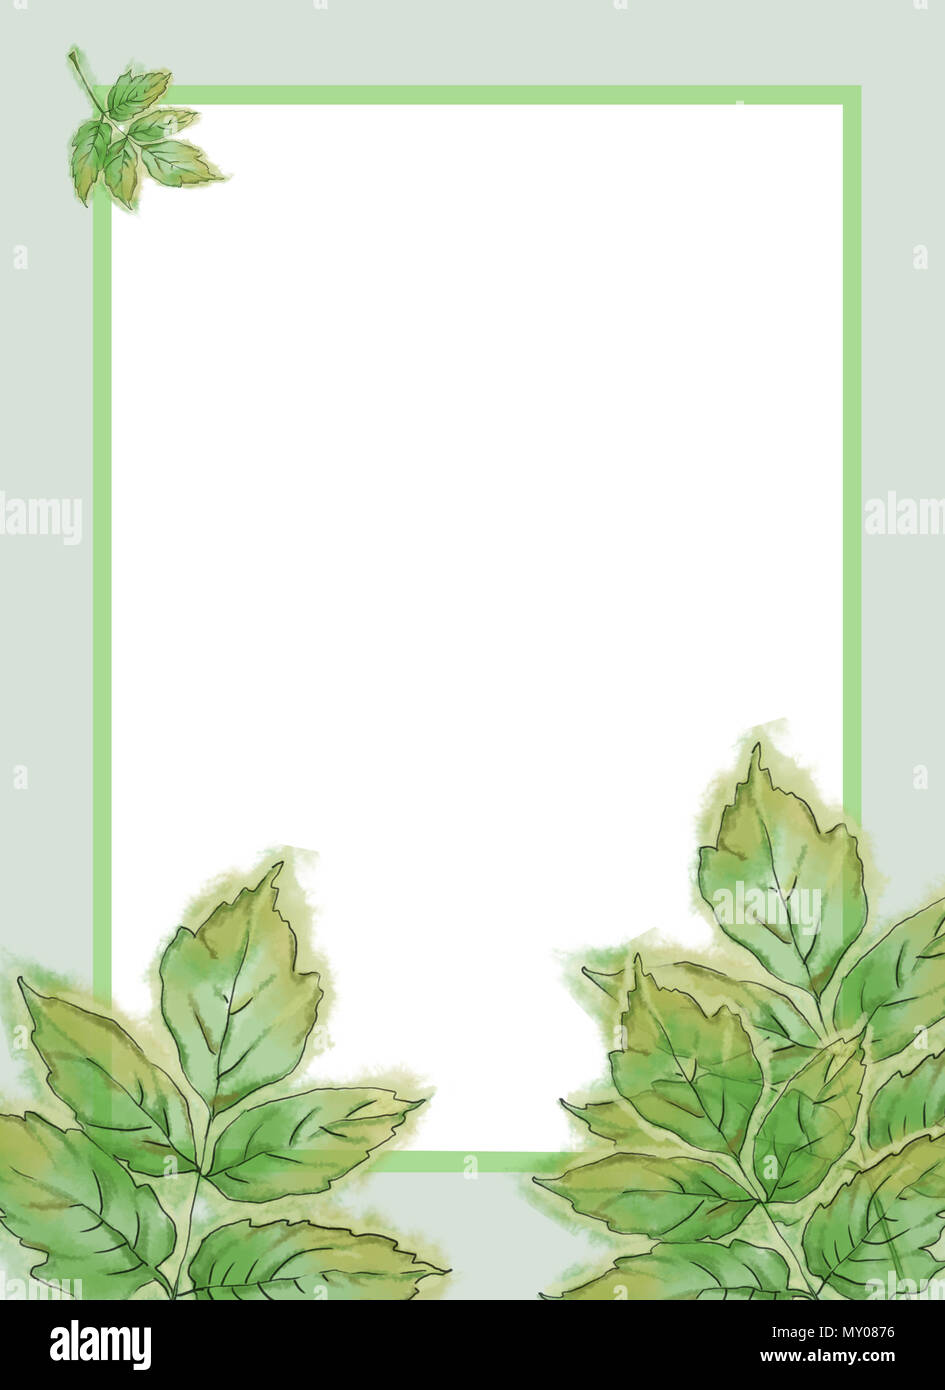 hickory leaves template with text space watercolor green foliage